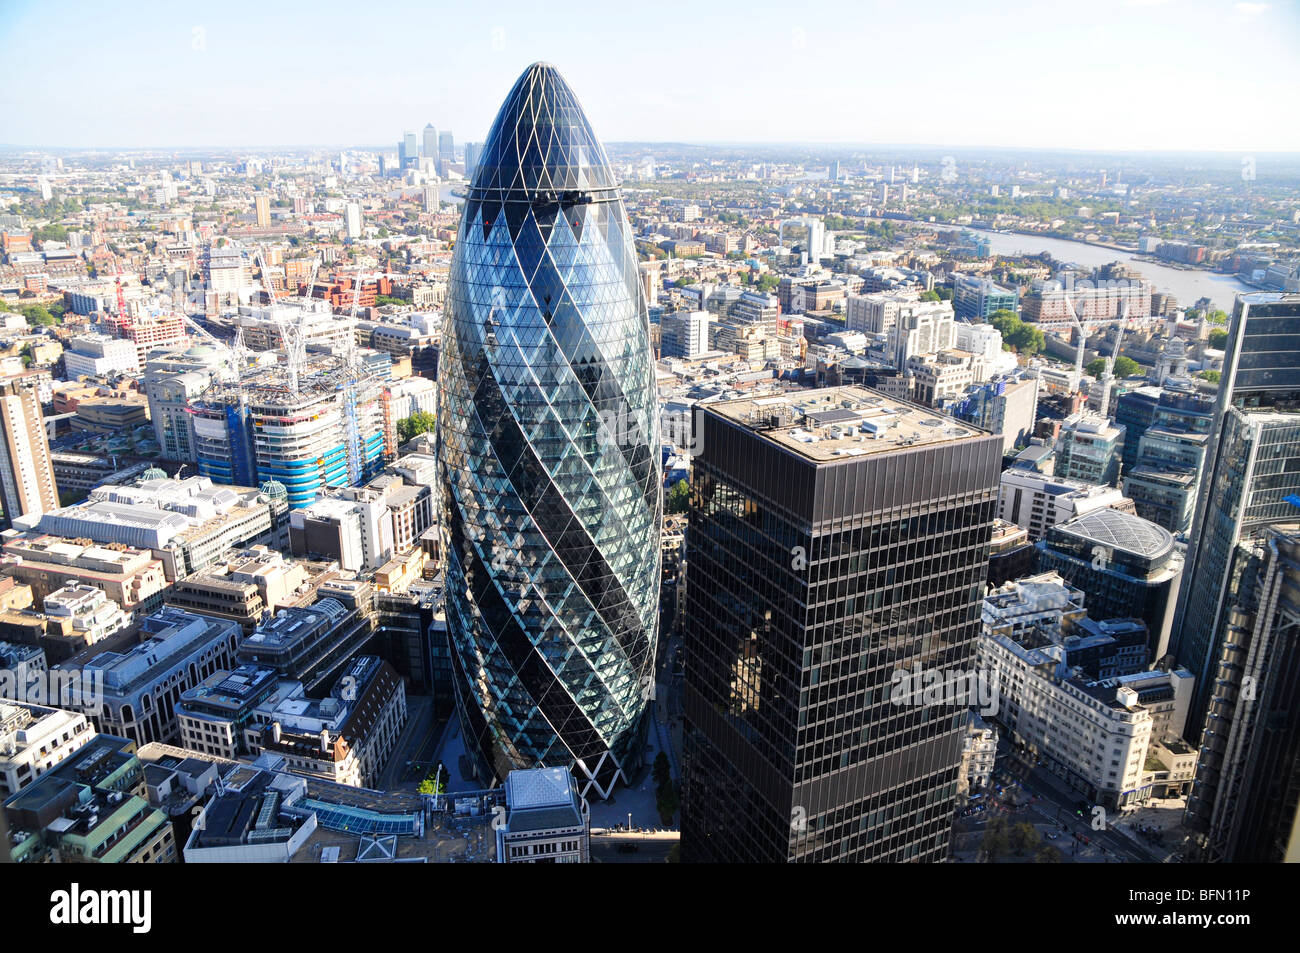 The Swiss Re Building (The Gherkin) at 30 St Mary Axe in The City of London, designed by Sir Norman Foster. - Stock Image